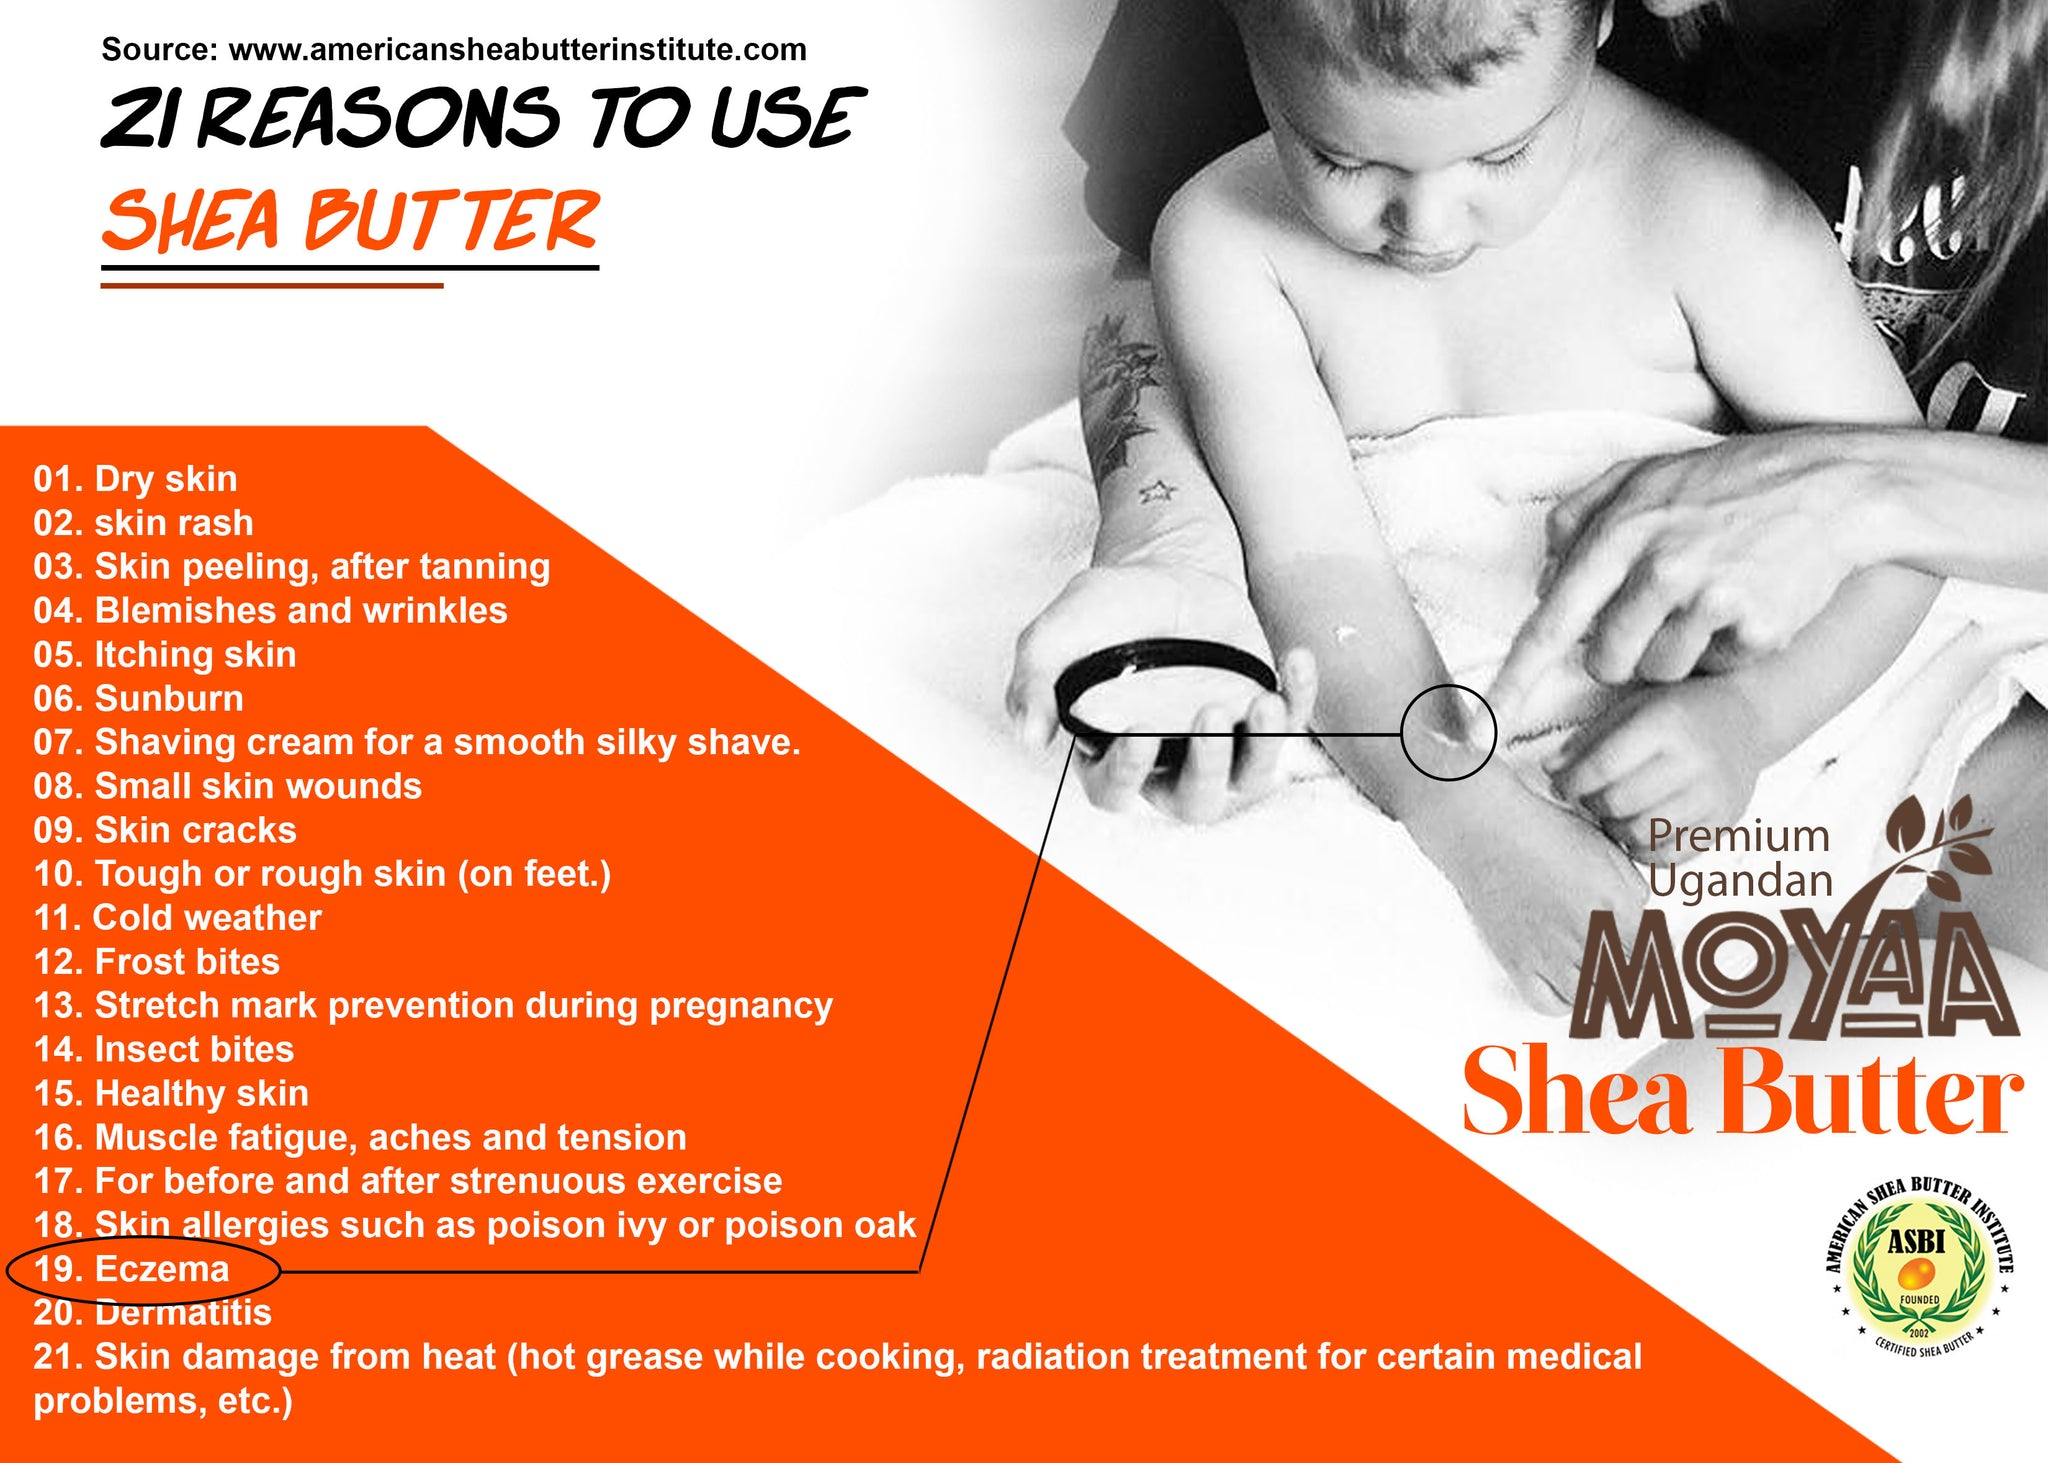 21 Uses for Shea Butter